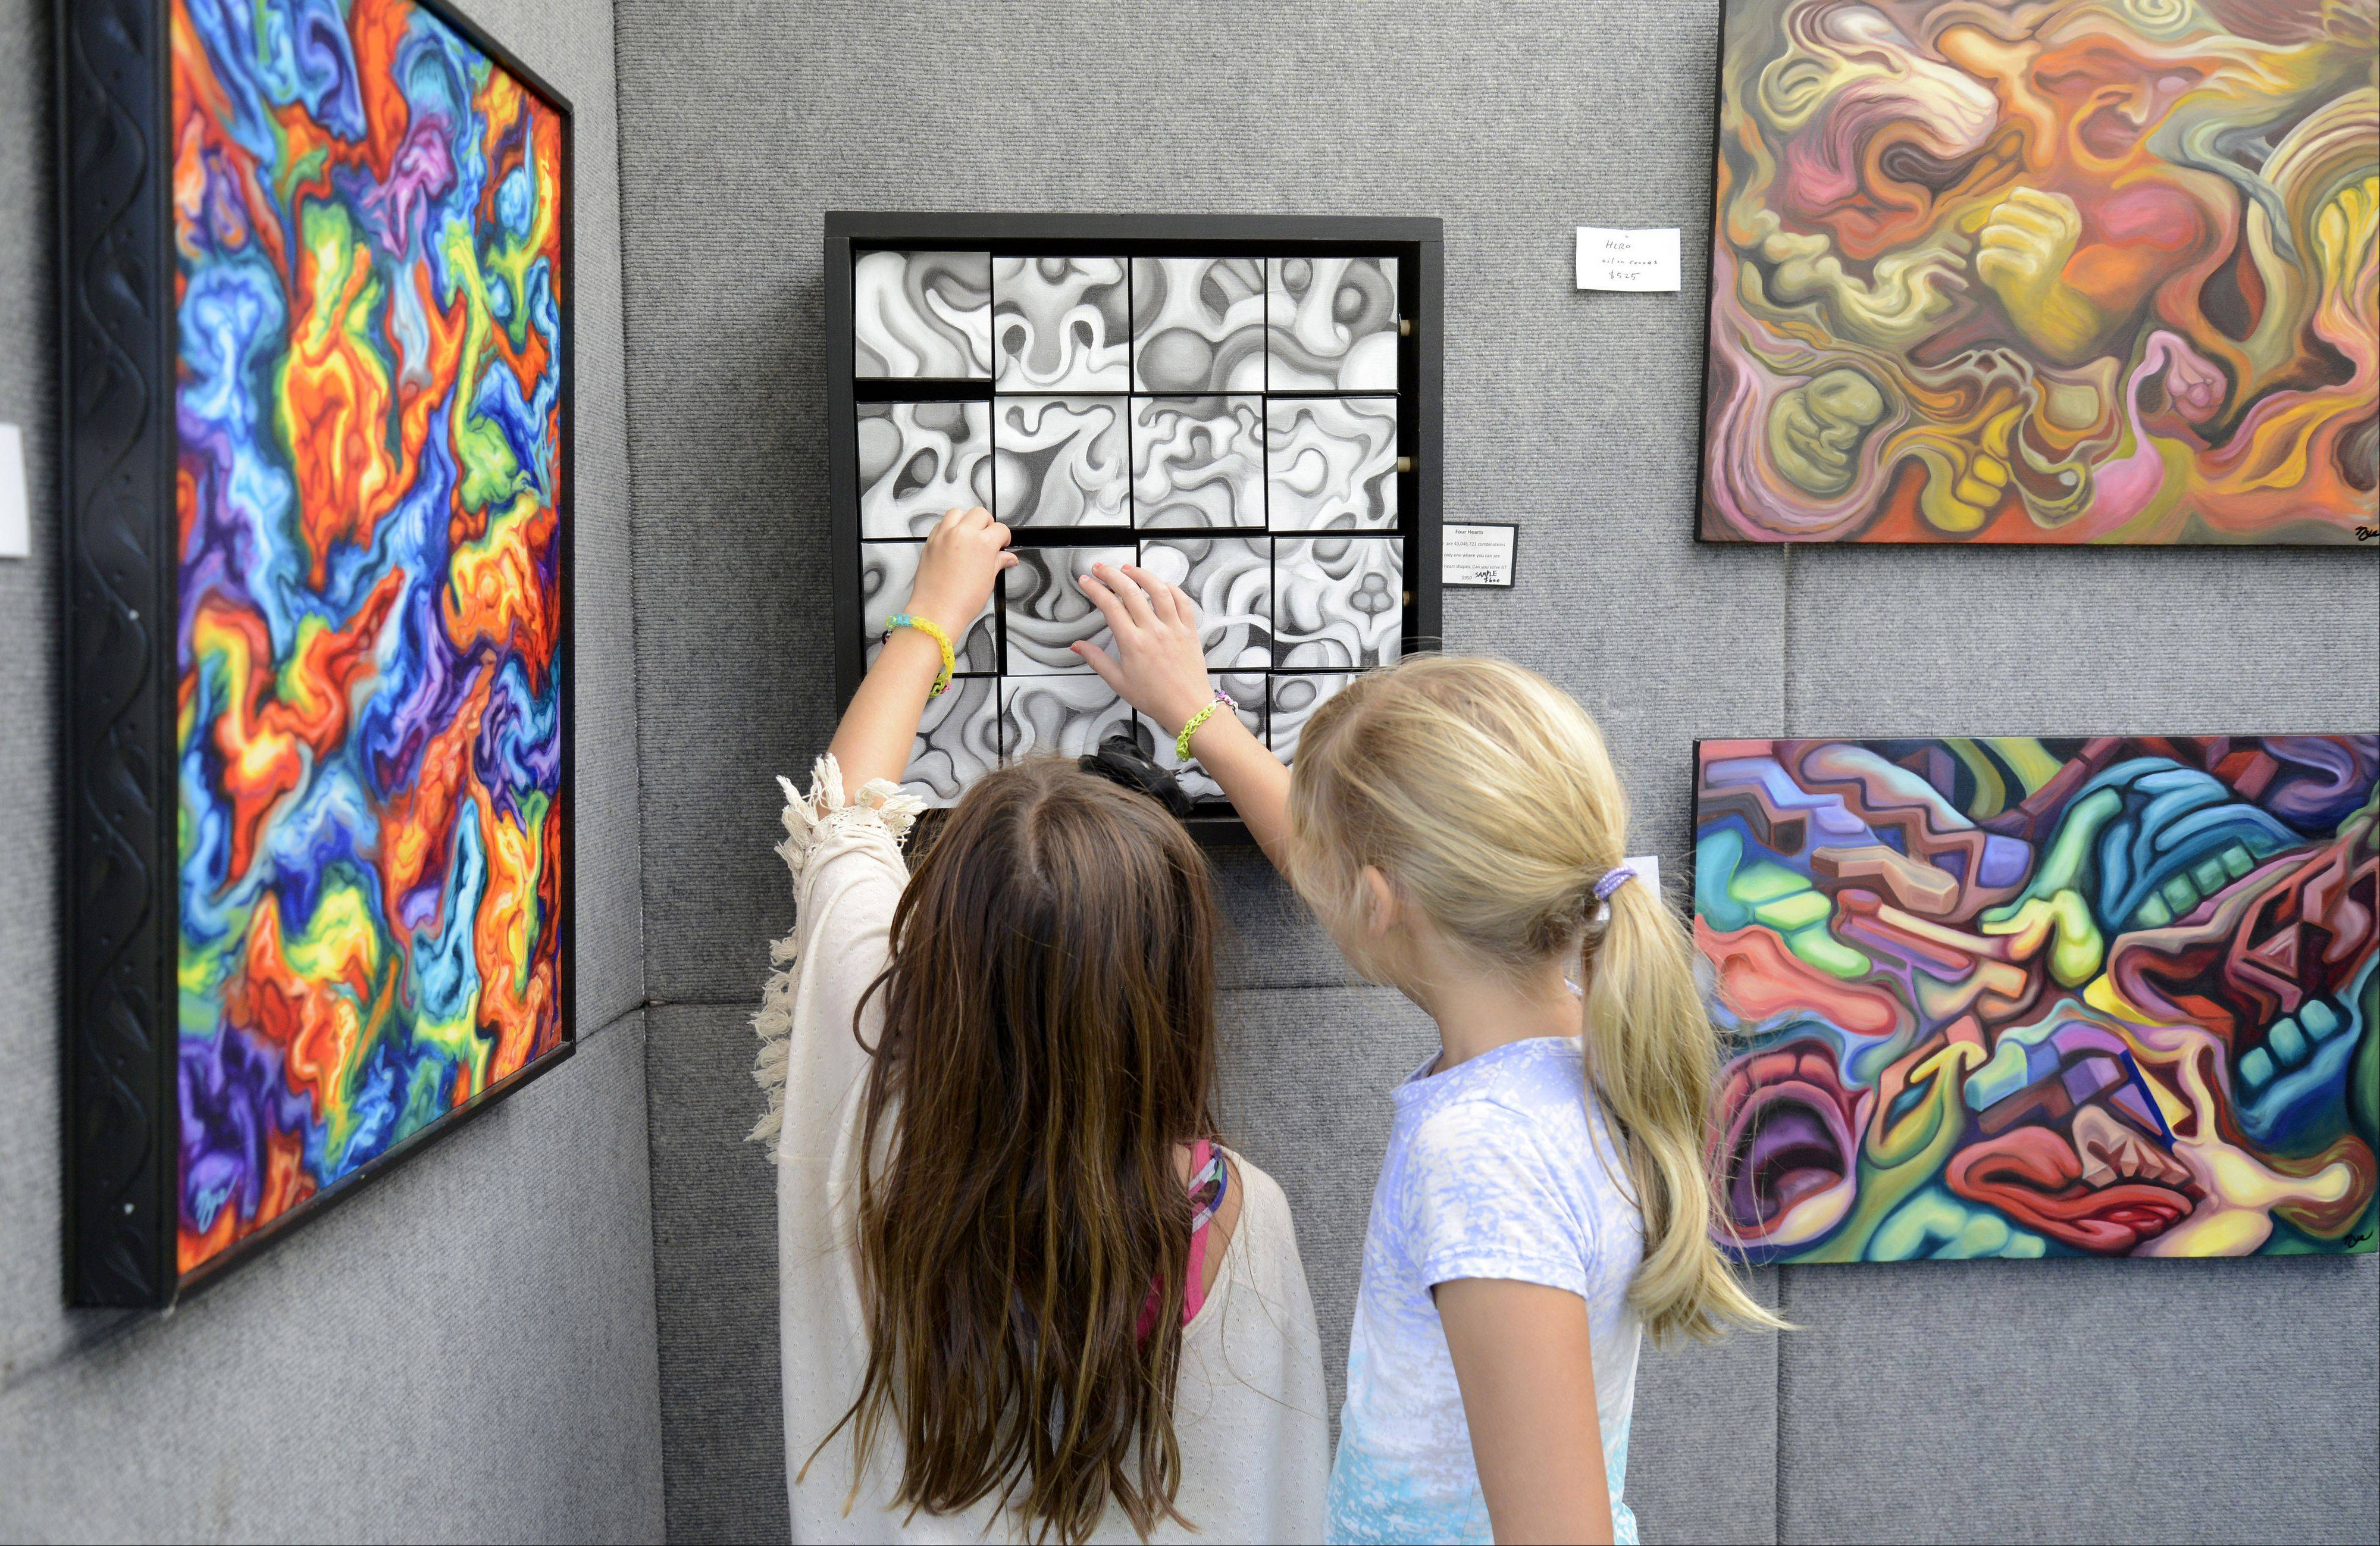 Hanna Christian, left, and Meredith Brown, both 8�and from Batavia, explore the interactive artwork of Eric Nye of Des Plaines at the Art in Your Eye festival Saturday in Batavia. Nye, who has been doing mixed media art for 15 years, uses images, paints and other media to create different scenes.